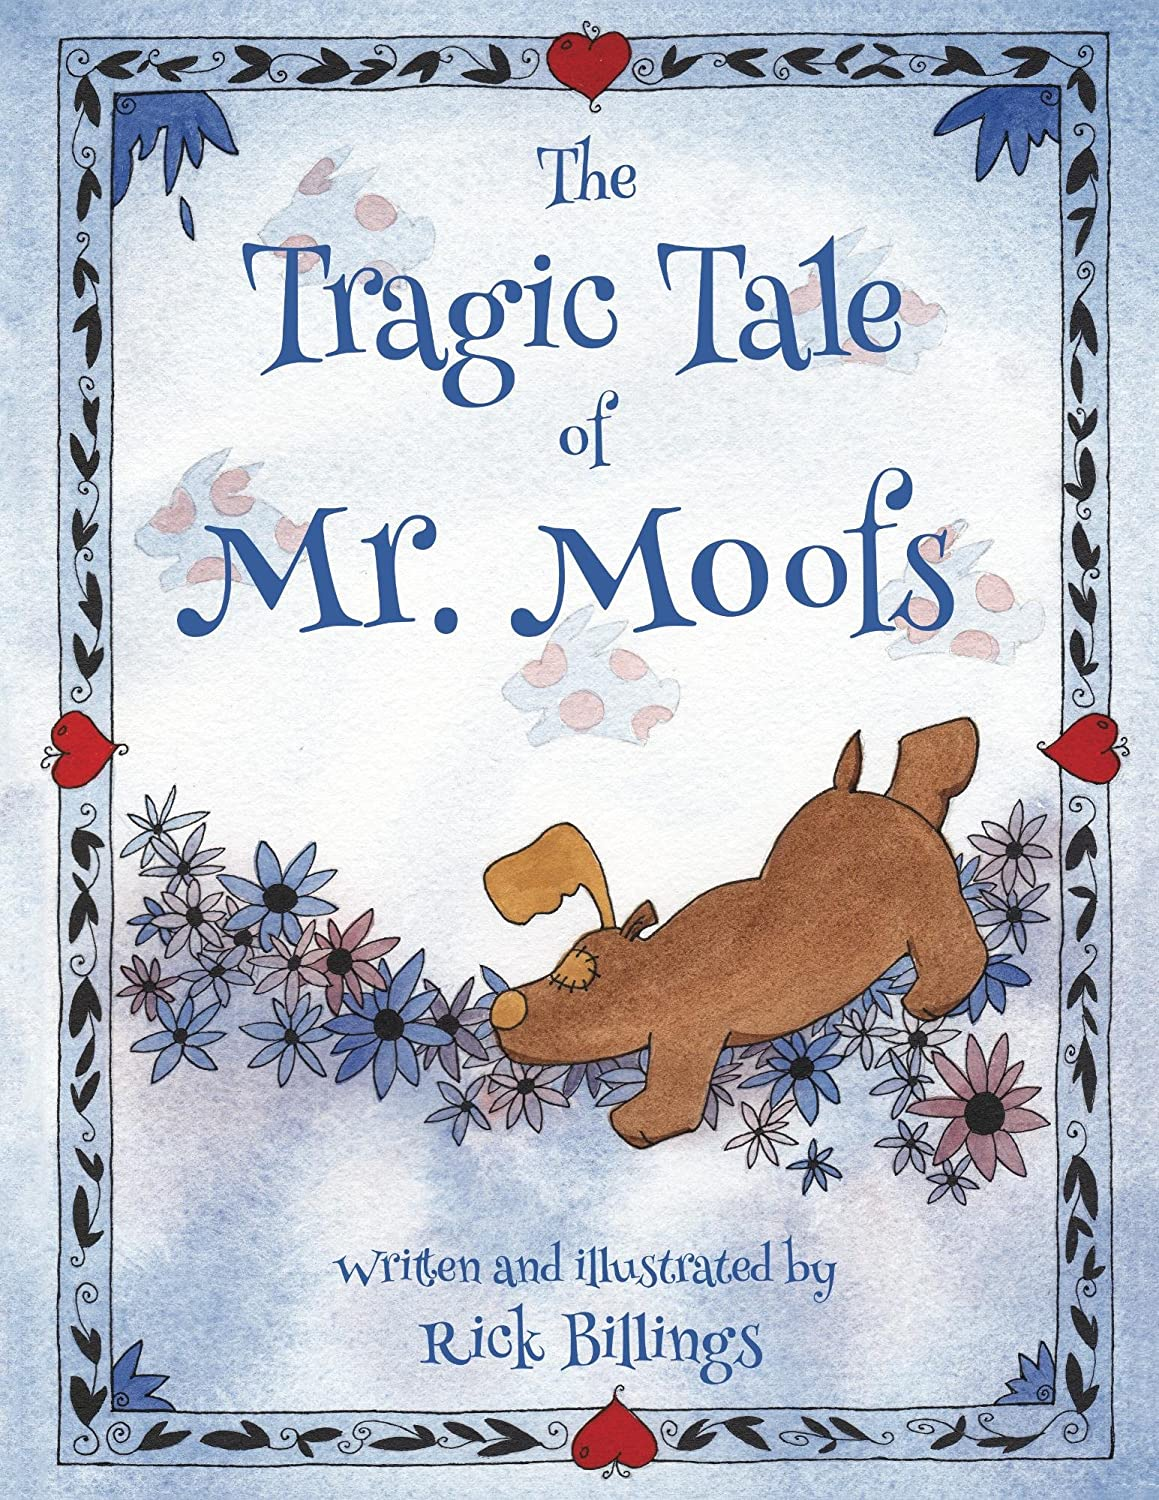 The Tragic Tale of Mr. Moofs